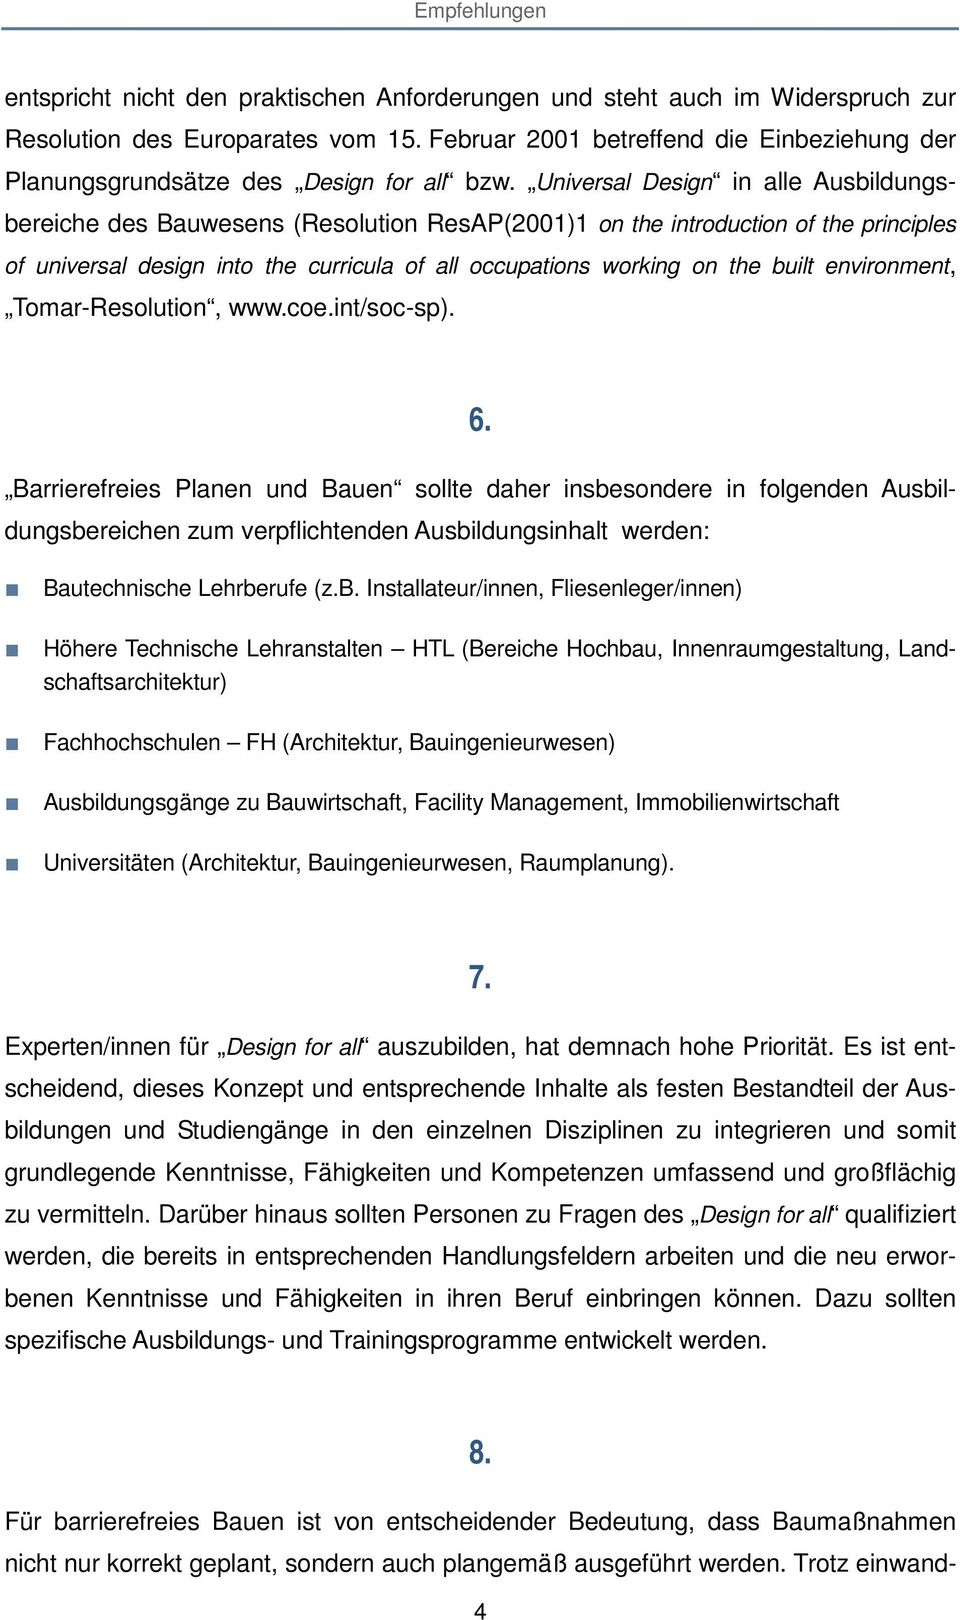 Universal Design in alle Ausbildungsbereiche des Bauwesens (Resolution ResAP(2001)1 on the introduction of the principles of universal design into the curricula of all occupations working on the